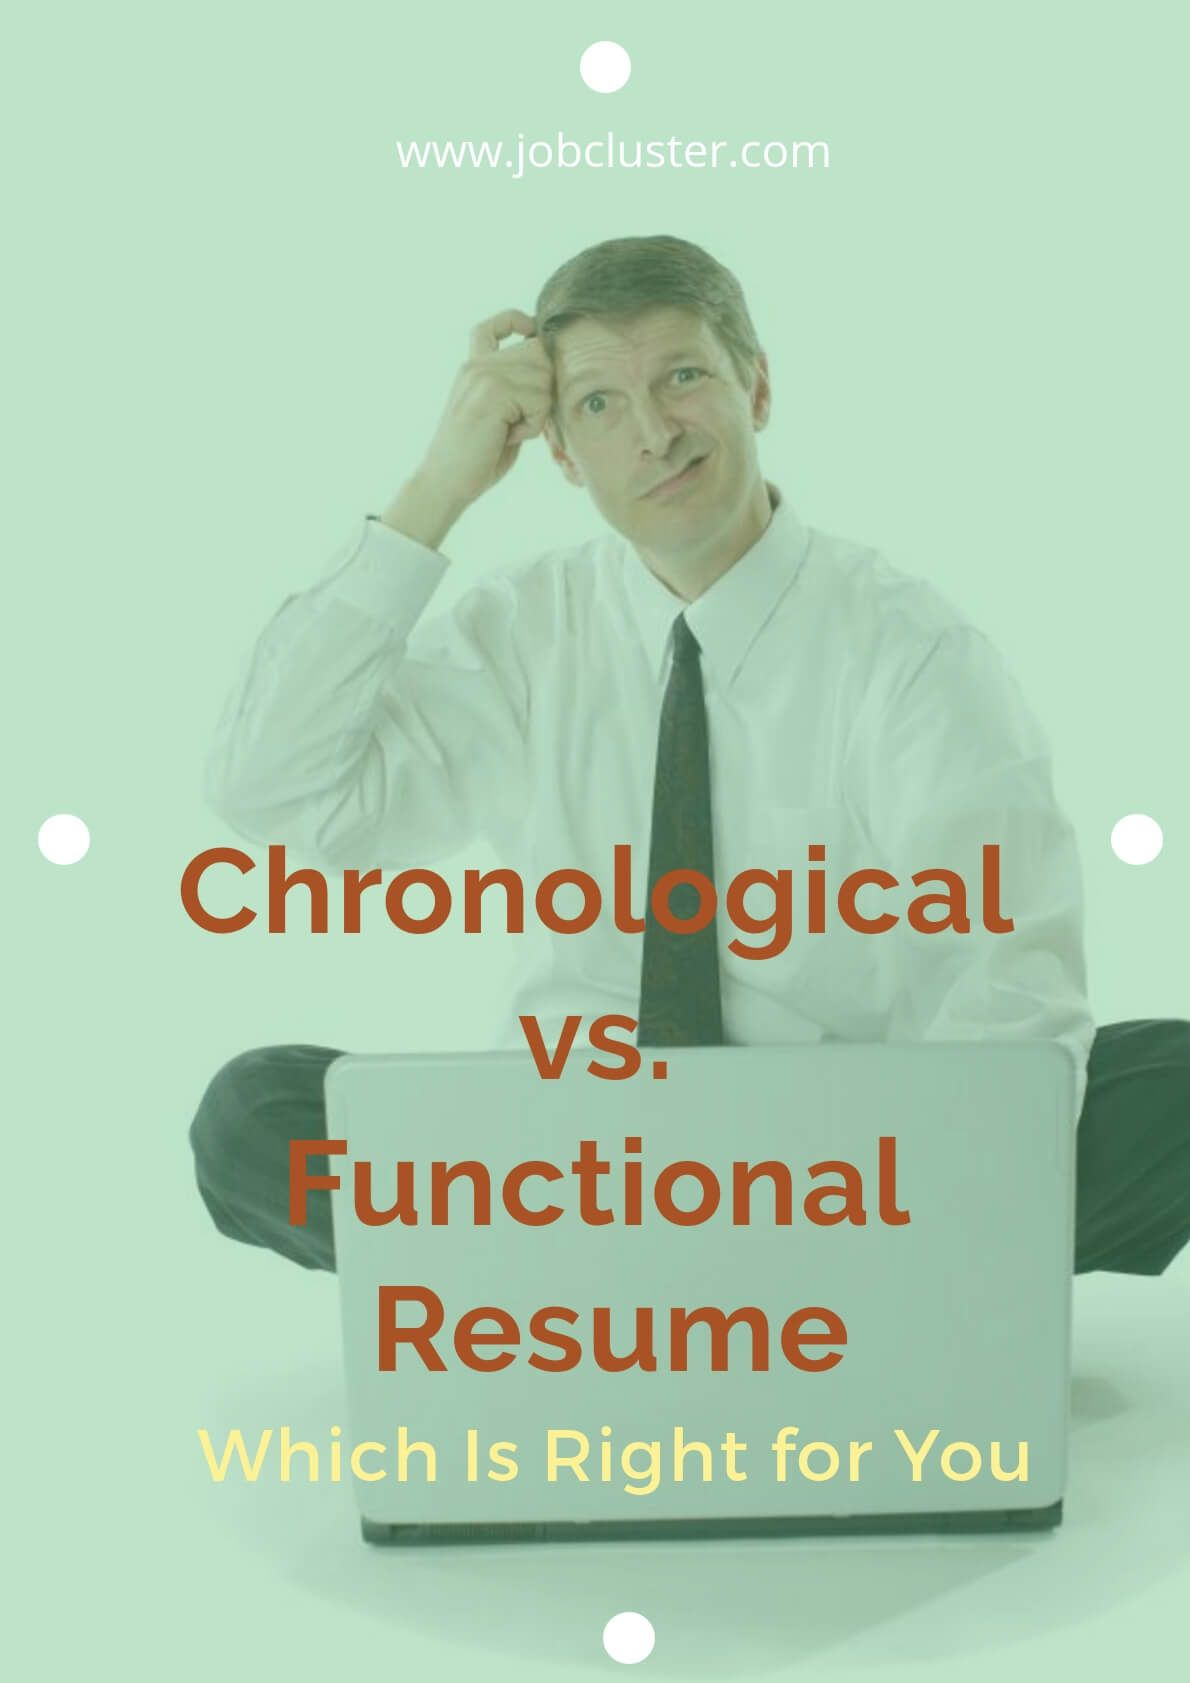 Chronological vs. Functional Resume Which Is Right for